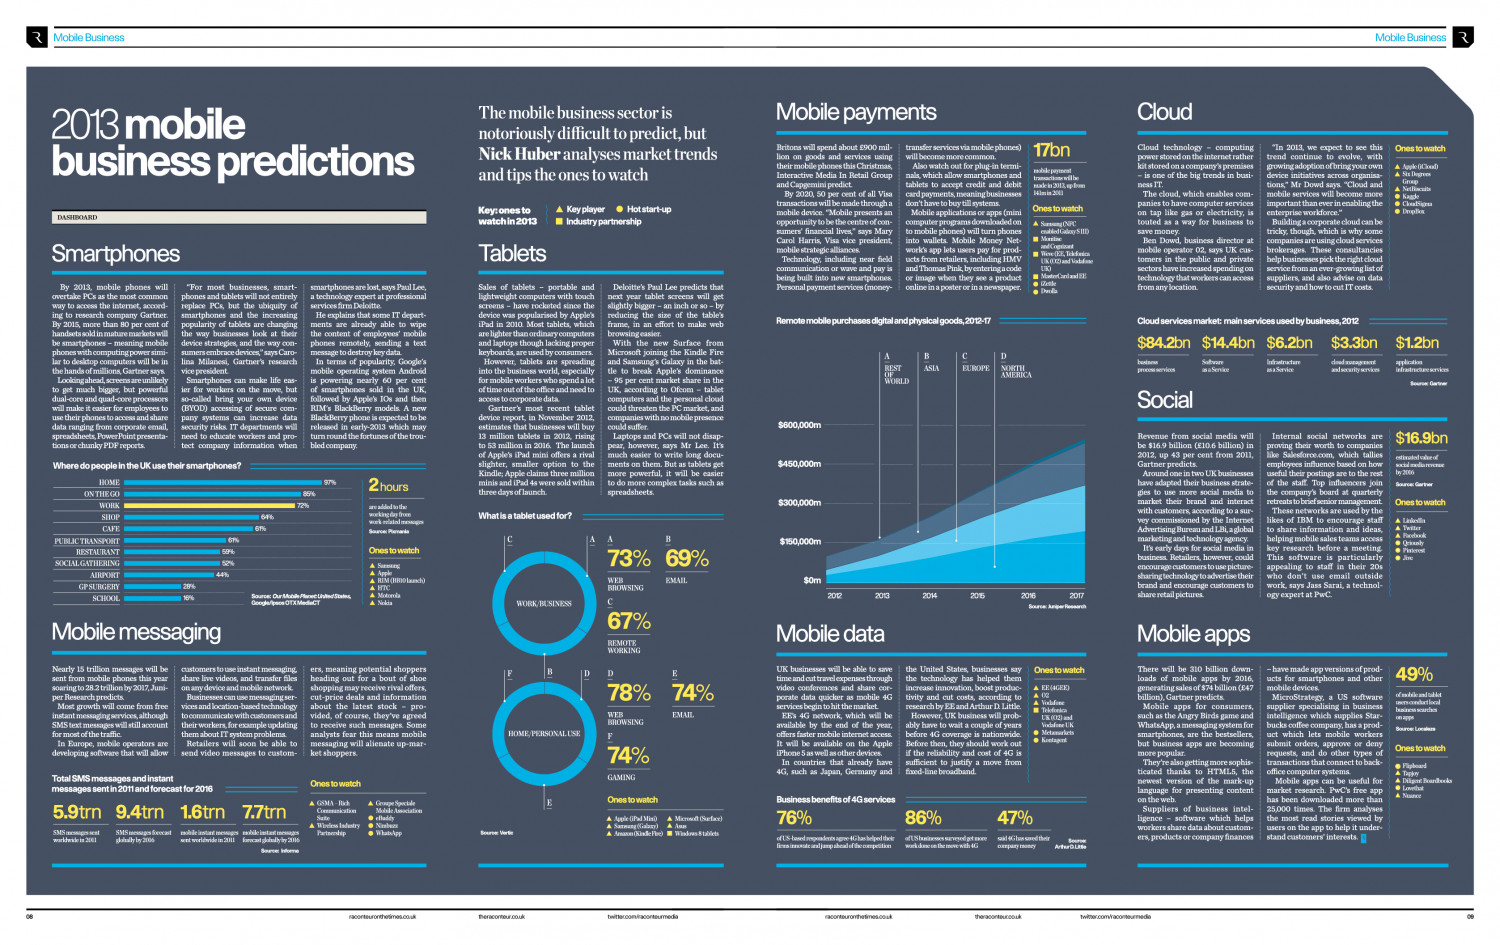 2013 Mobile Business Predictions Infographic